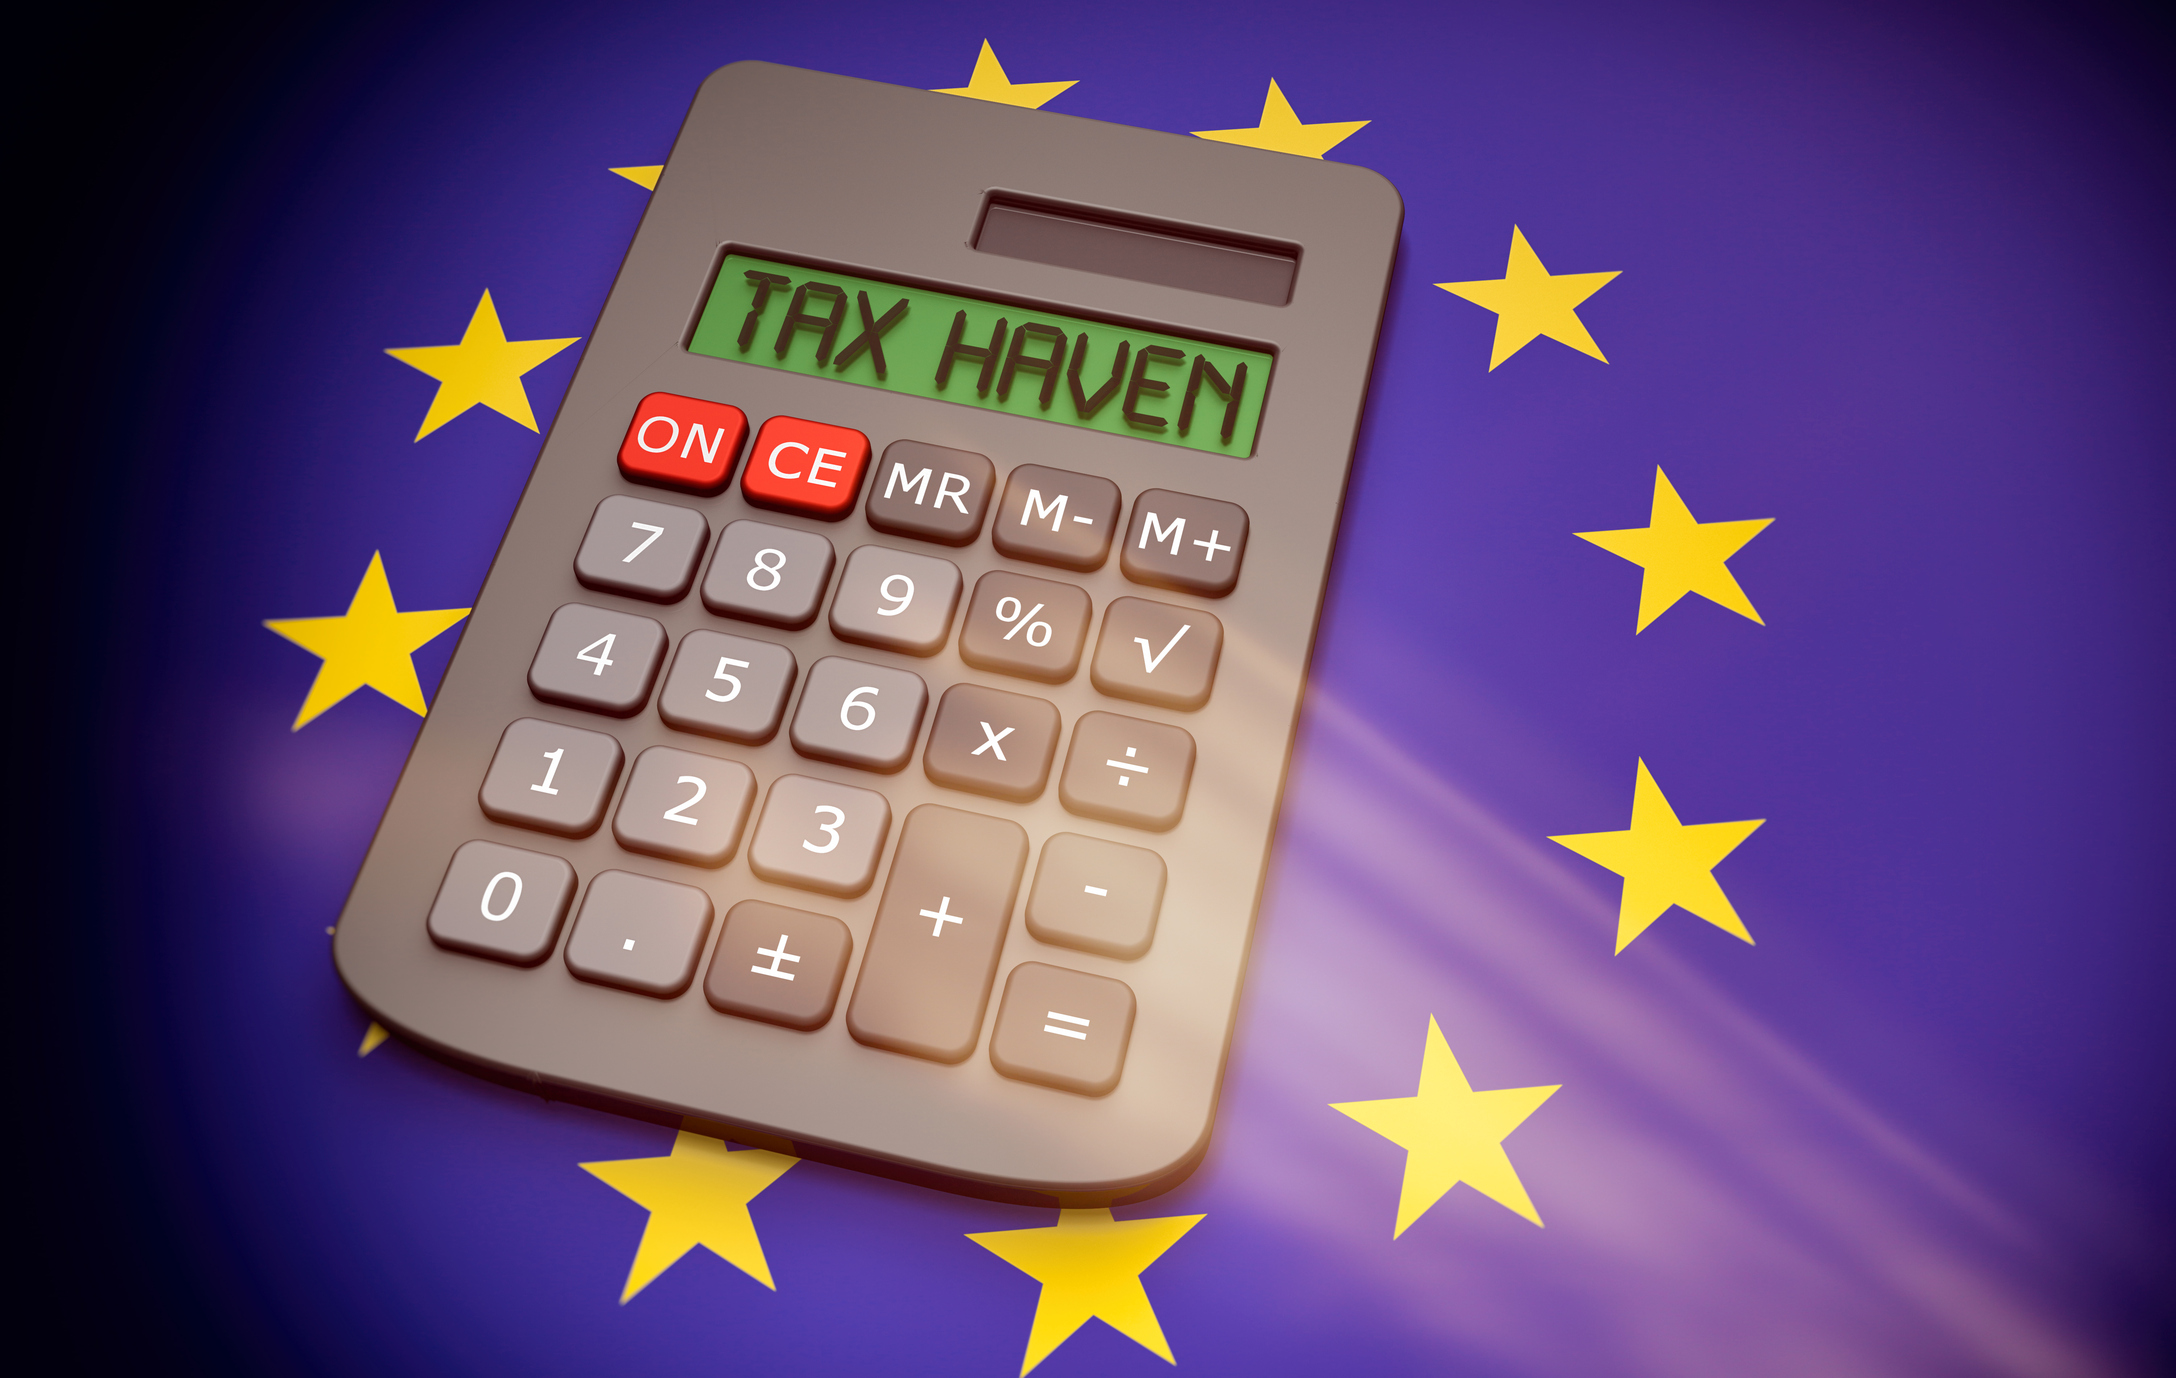 Tax haven blacklist trashed by Members of EU Parliament